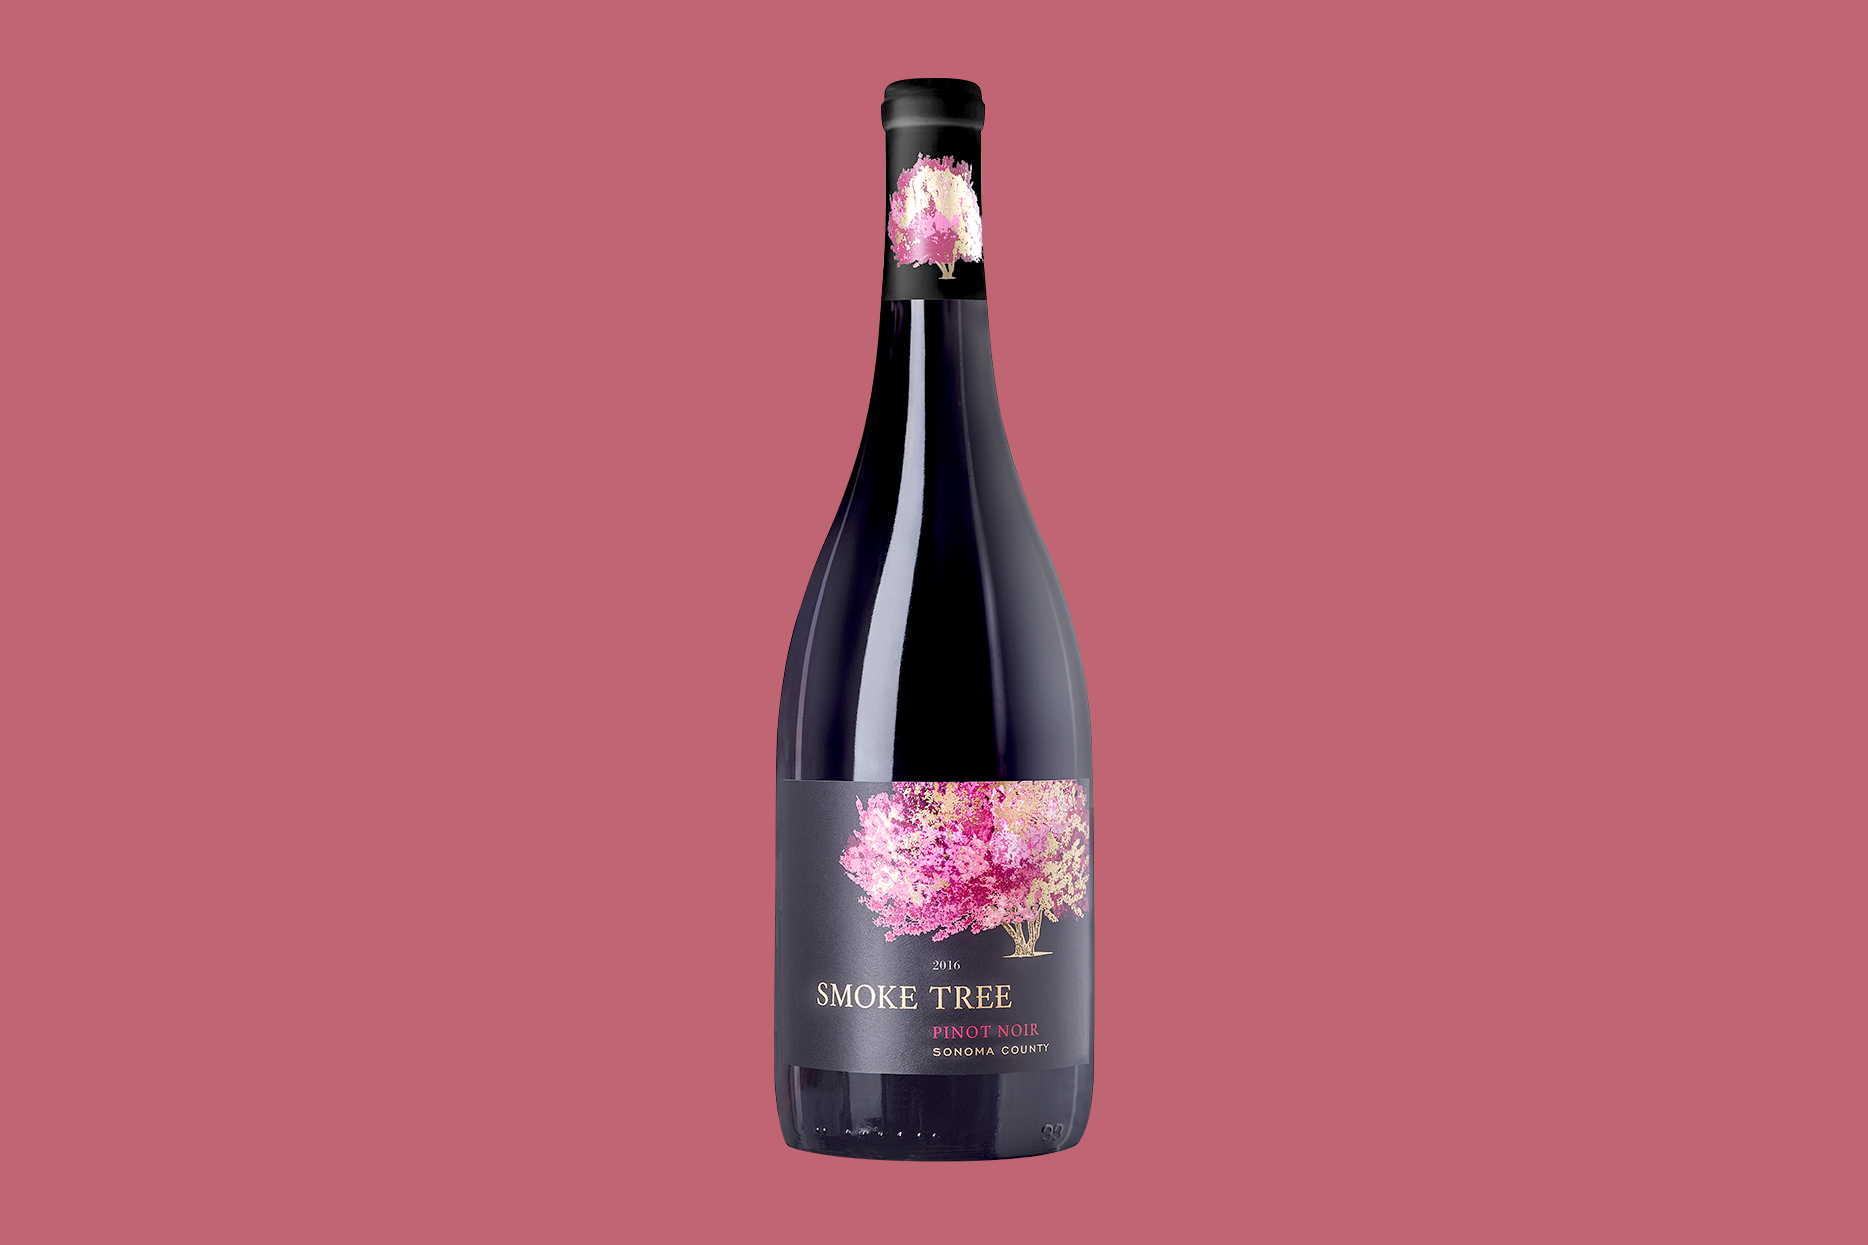 2016 Smoke Tree Pinot Noir